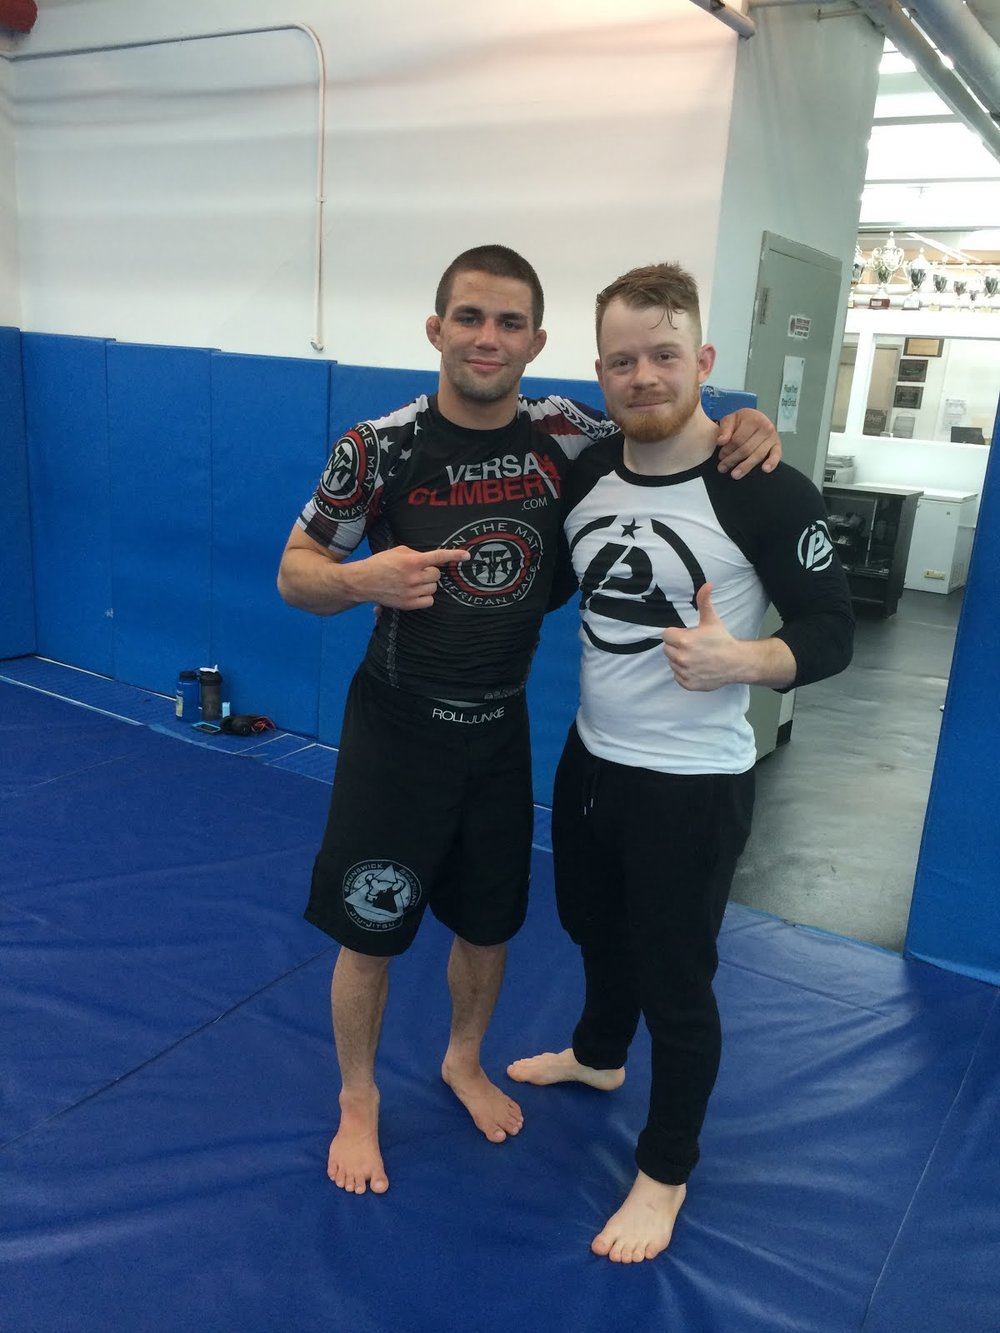 The Worlds best submission grappler Garry Tonon and me after our roll.  -